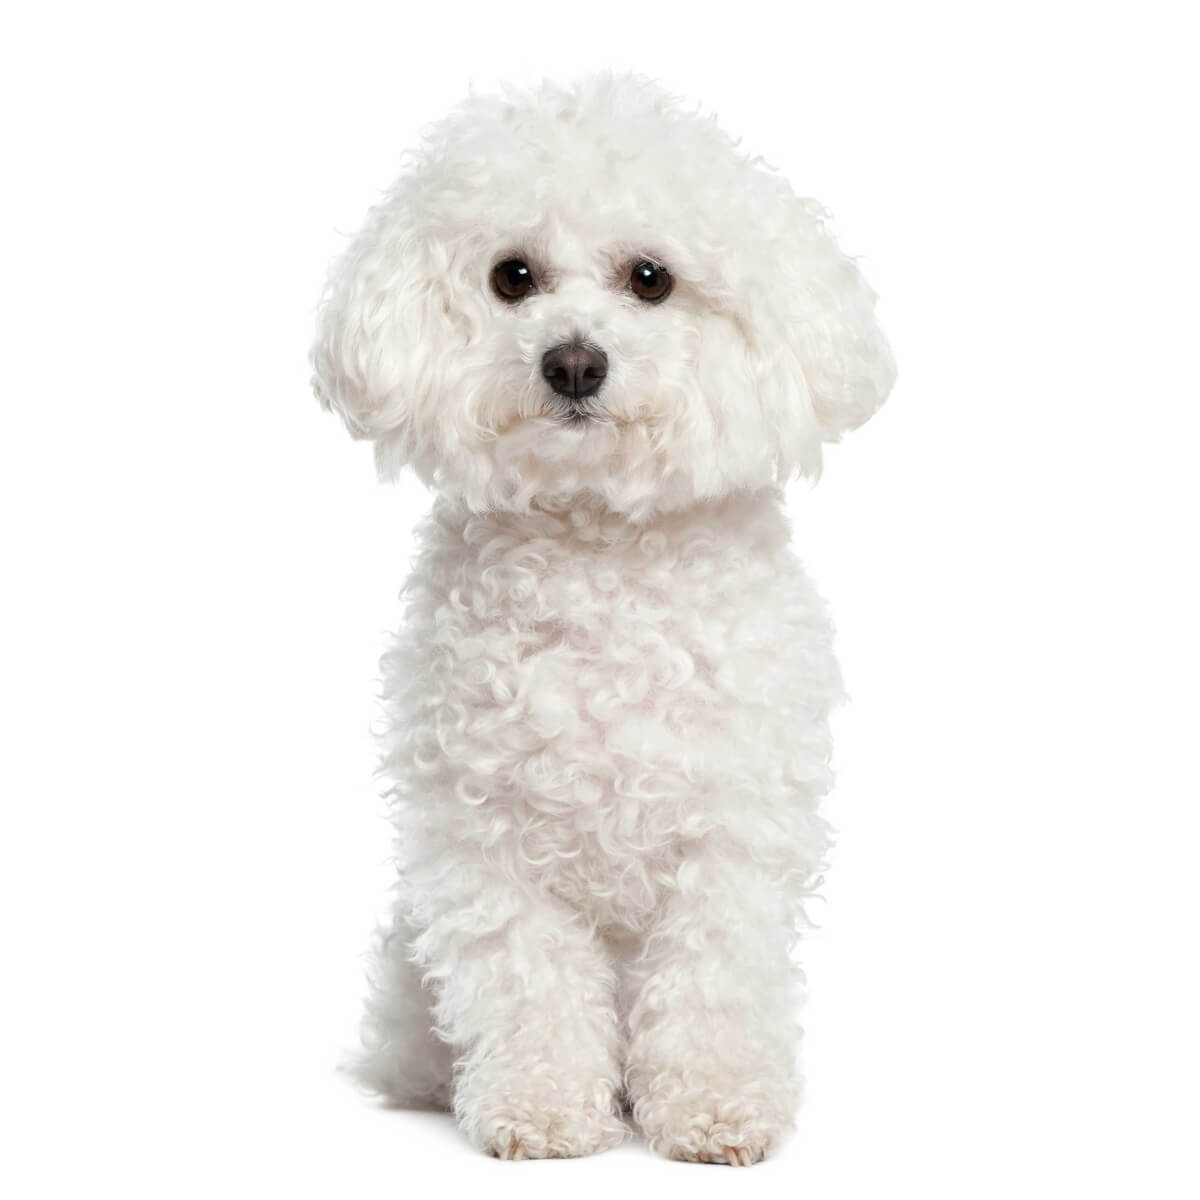 Bichon Frise Dog Breed Information Pictures More